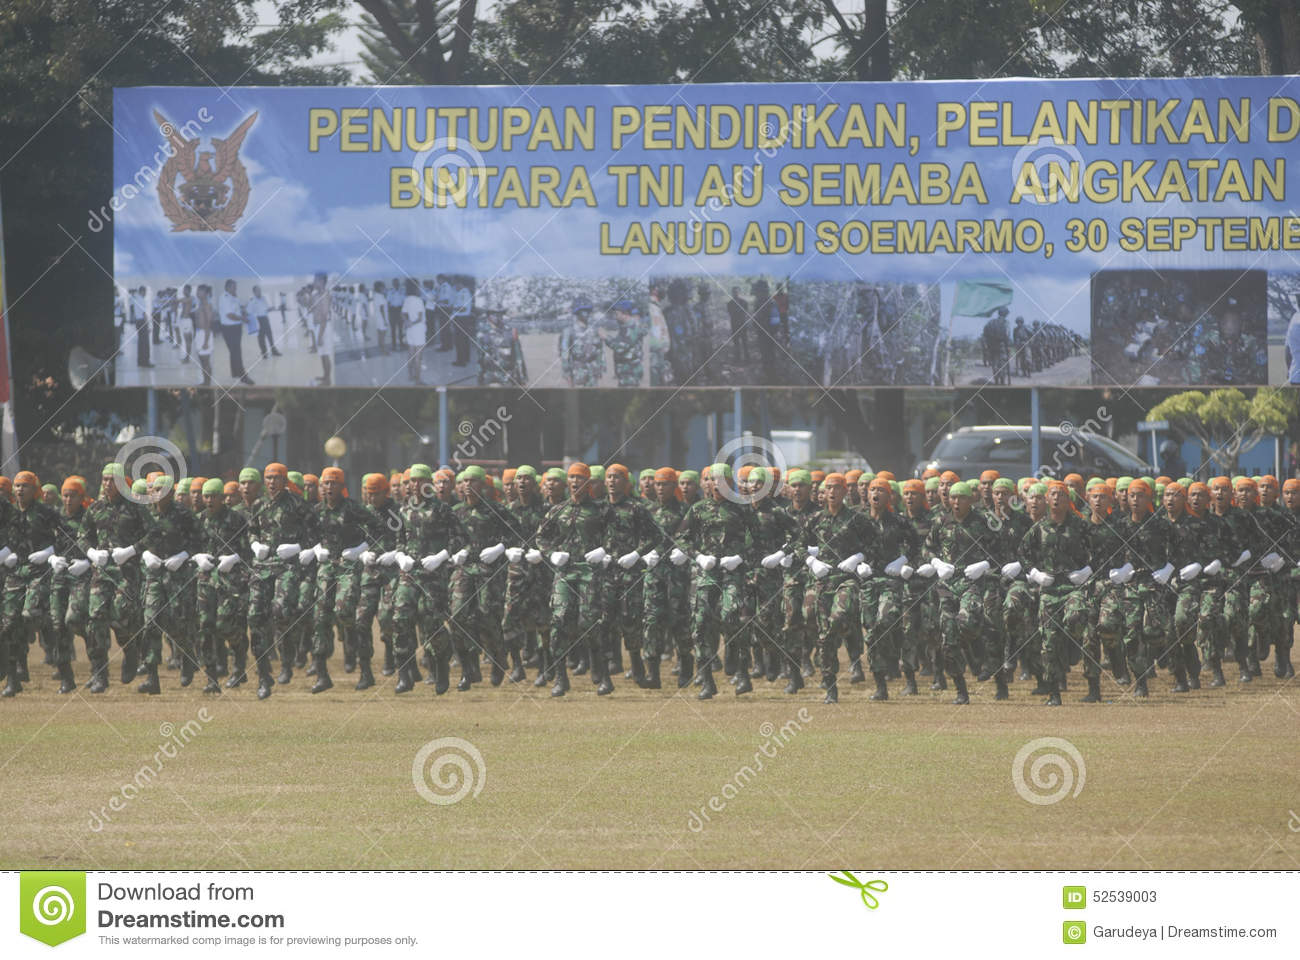 I MILITARI INDONESIANI RIFORMANO